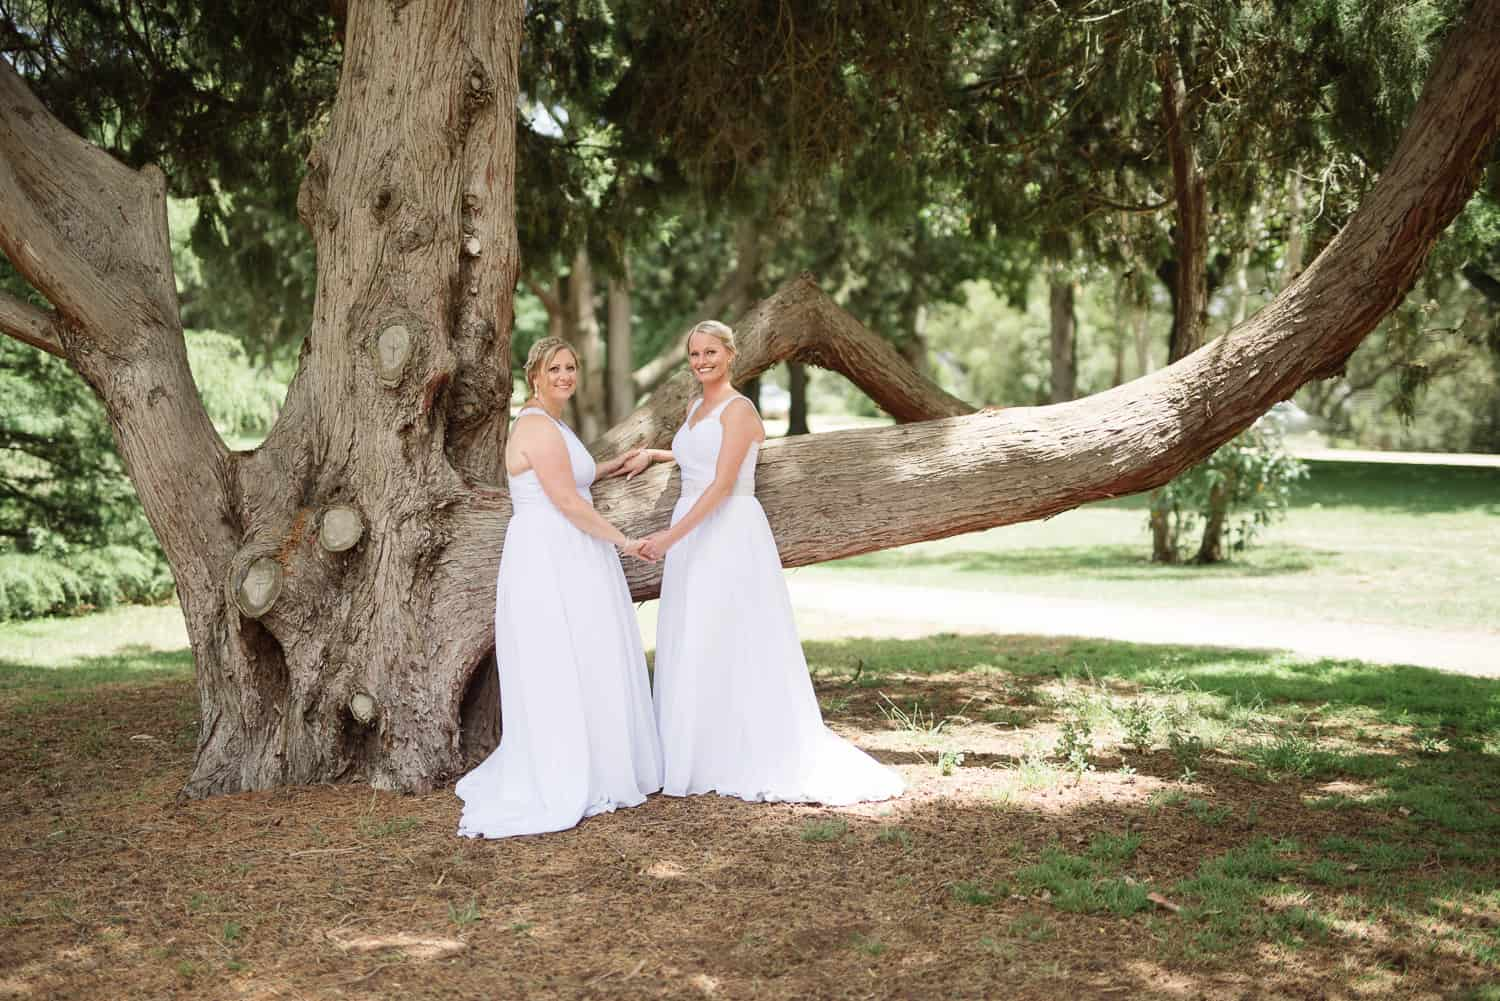 Same sex wedding portraits in colac botanic gardens